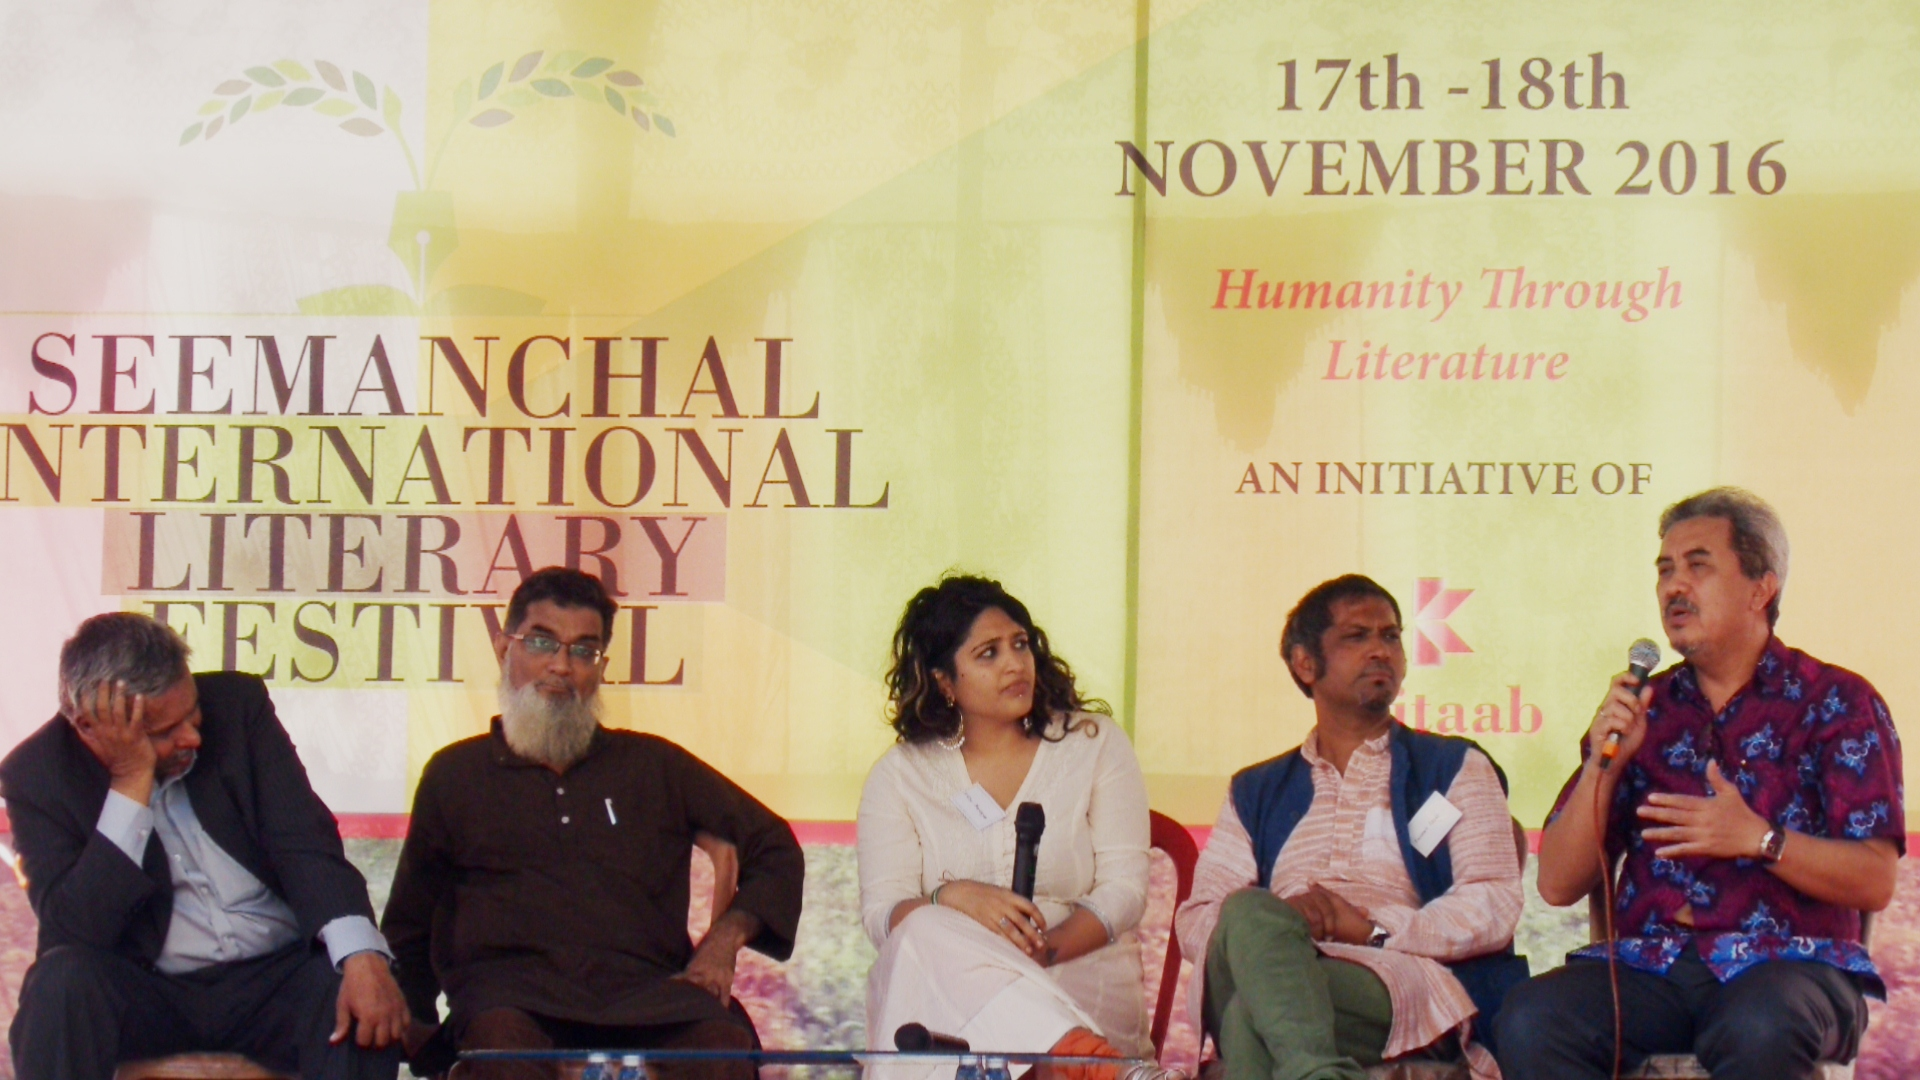 Seemanchal International Literary Festival 2016: Taking Literature to the Grassroots